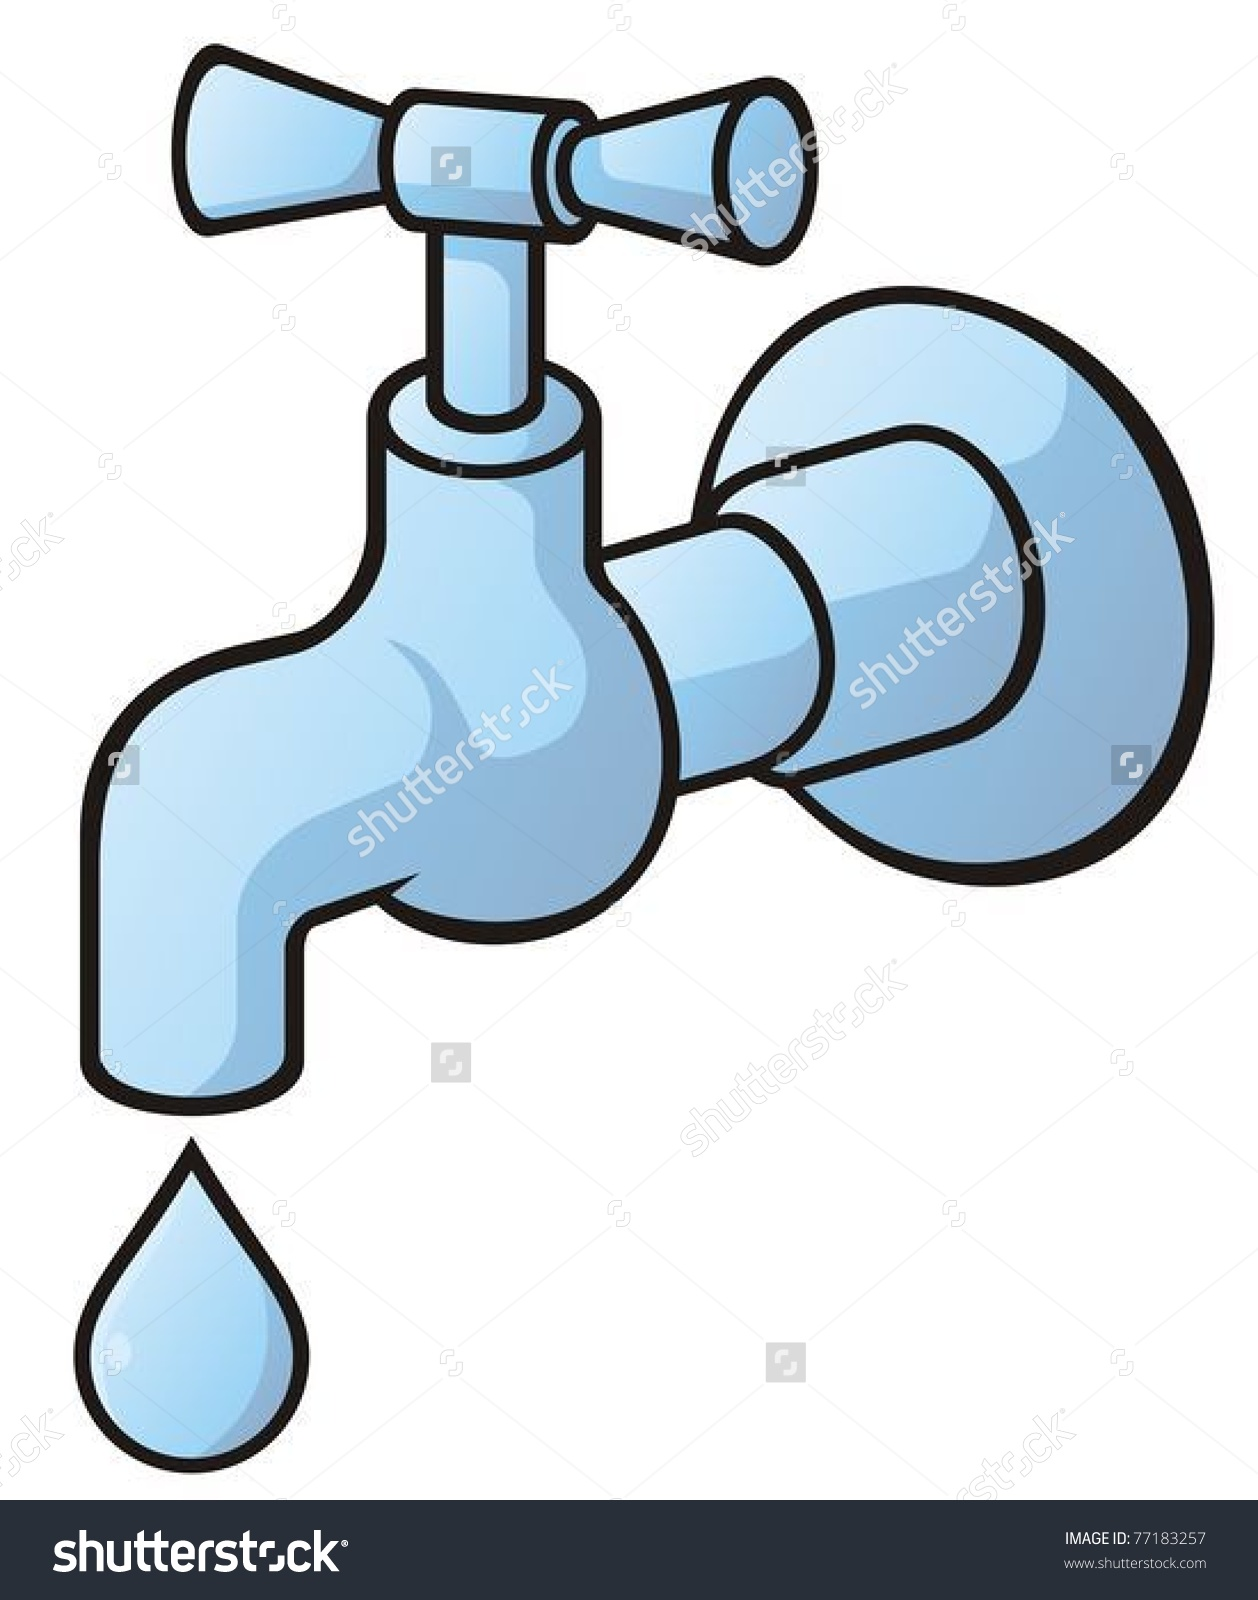 Dripping tap clipart.